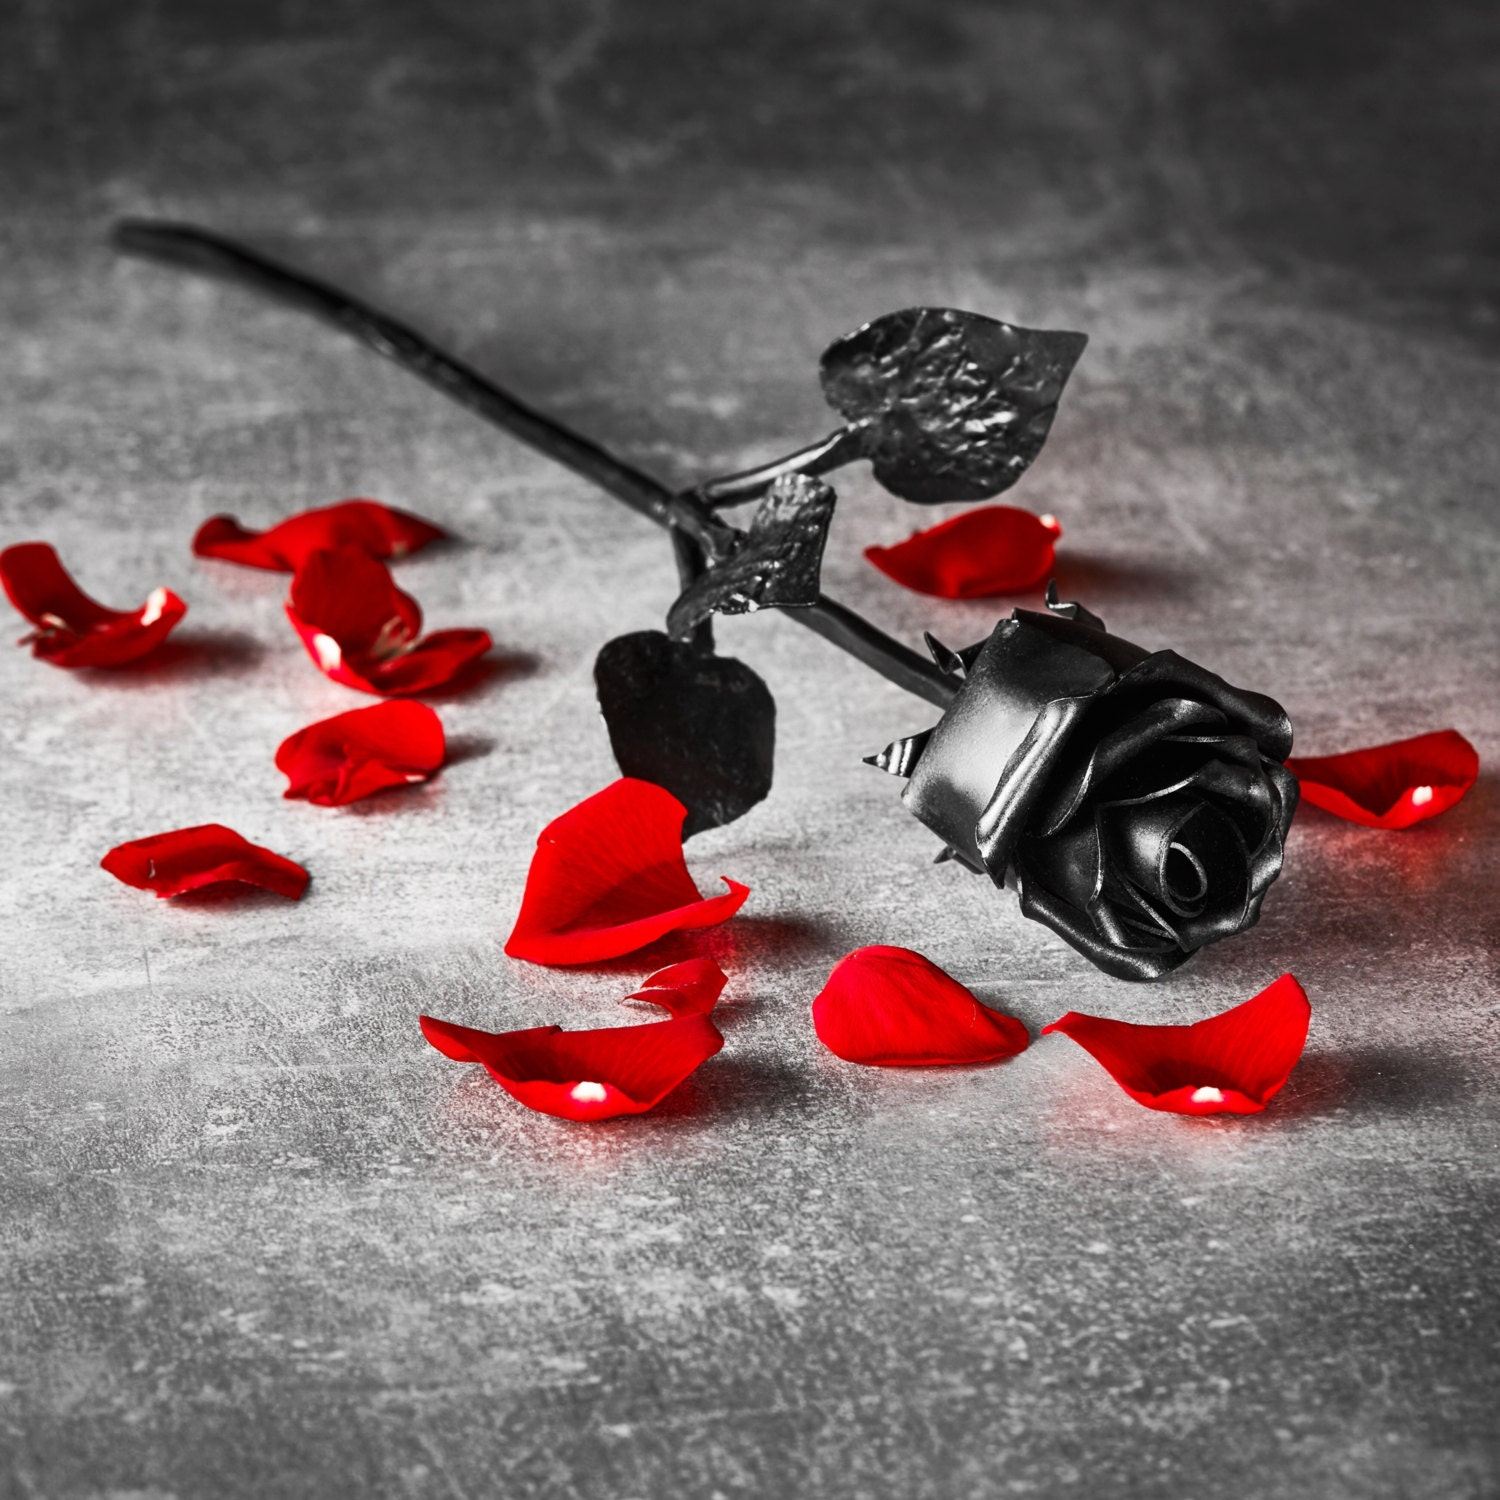 Iron Gifts For 6th Wedding Anniversary: Hand Forged Iron Rose 6th Anniversary Gift Everlasting Rose